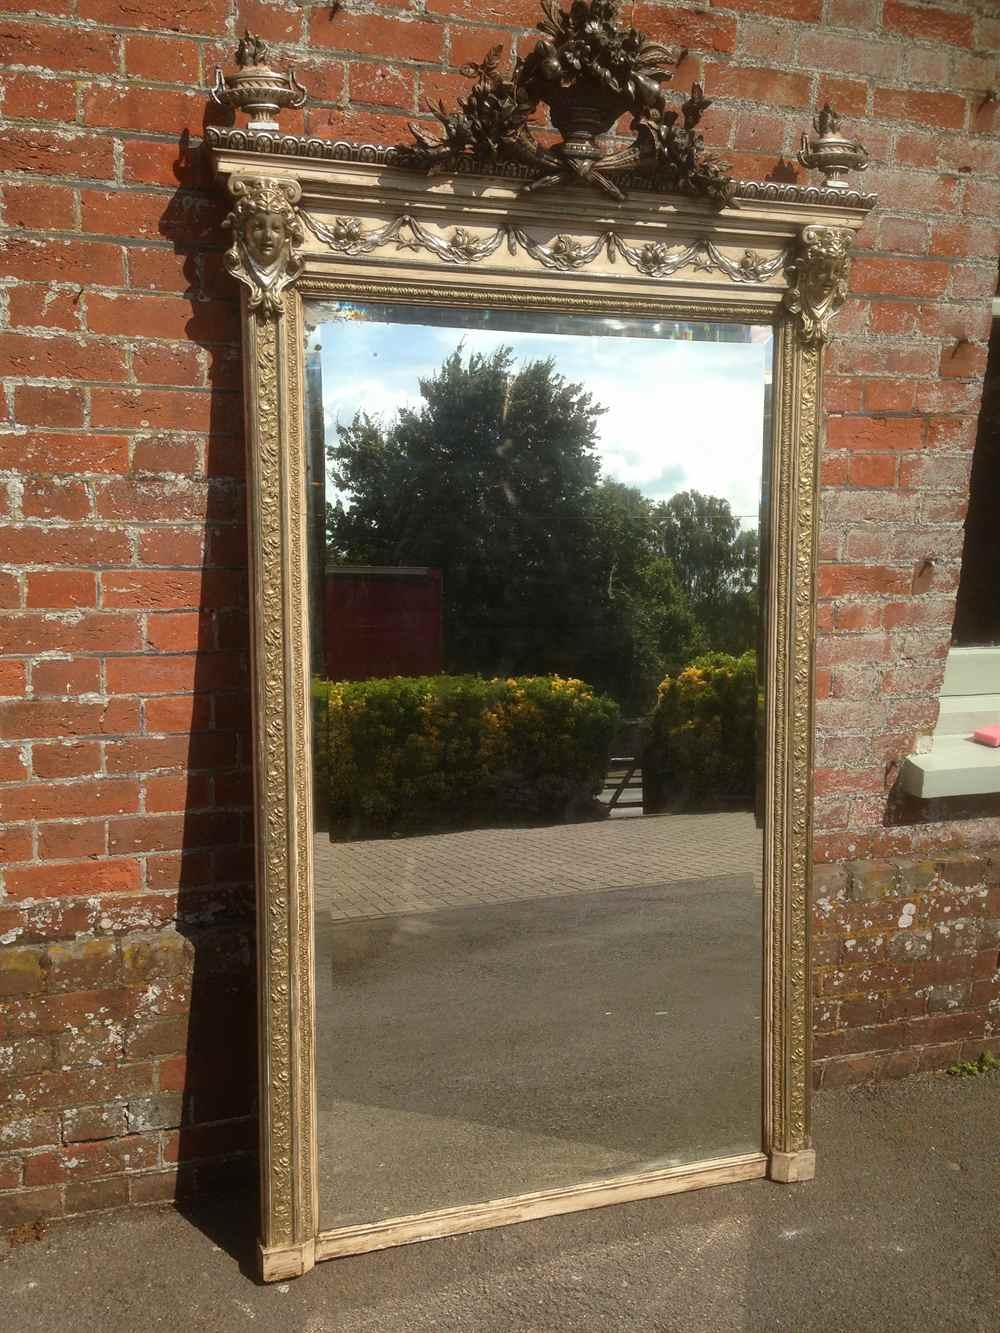 A Stunning Very Decorative Very Large Antique 19th Century French Pertaining To Large Antique Mirrors (View 1 of 15)